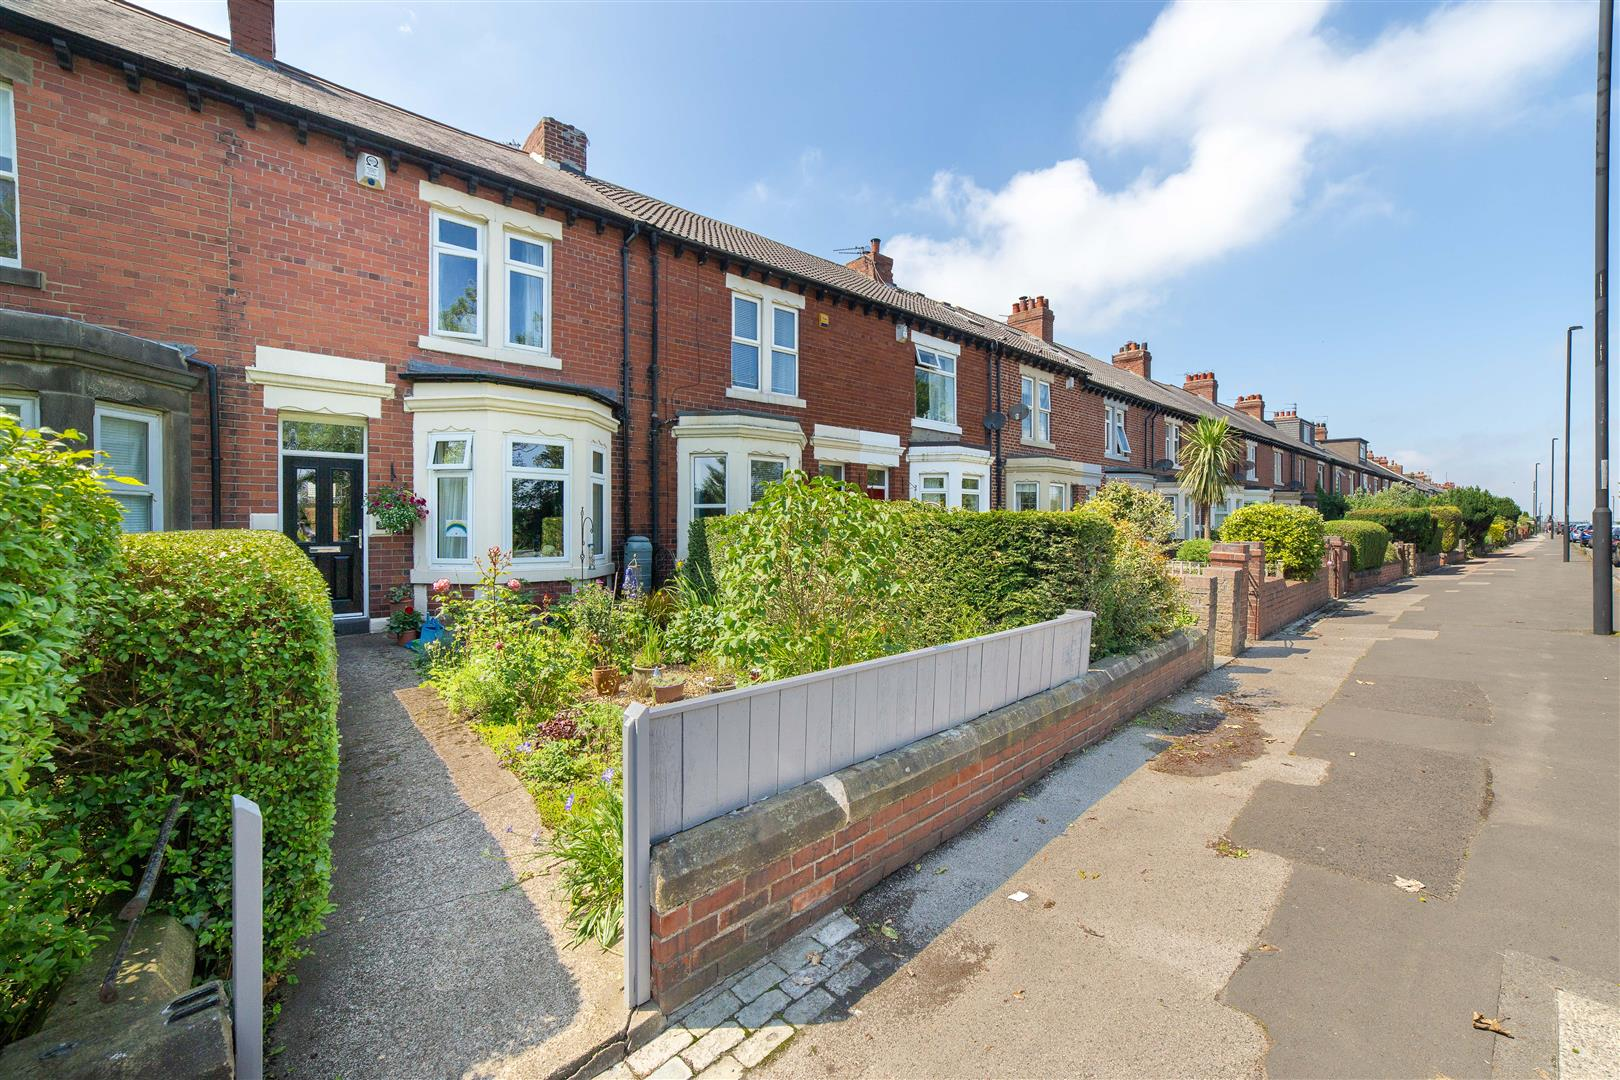 2 bed terraced house for sale in Newcastle Upon Tyne, NE13 6LH - Property Image 1